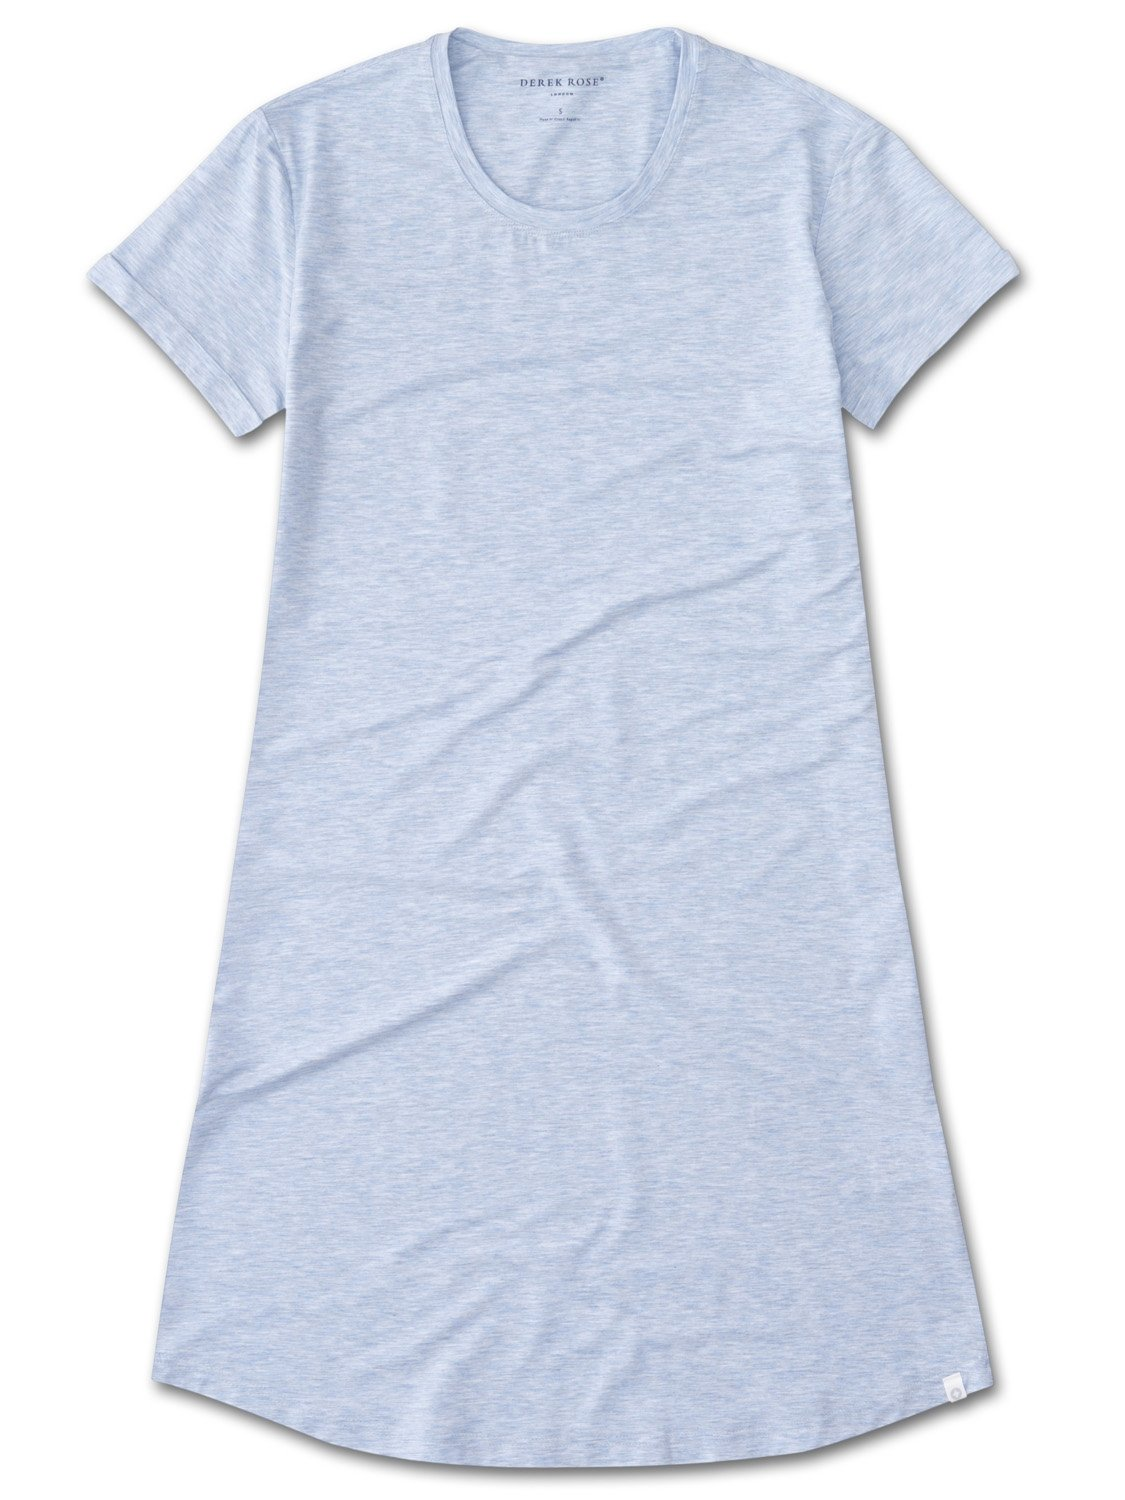 Women's Sleep T-Shirt Ethan Micro Modal Stretch Blue